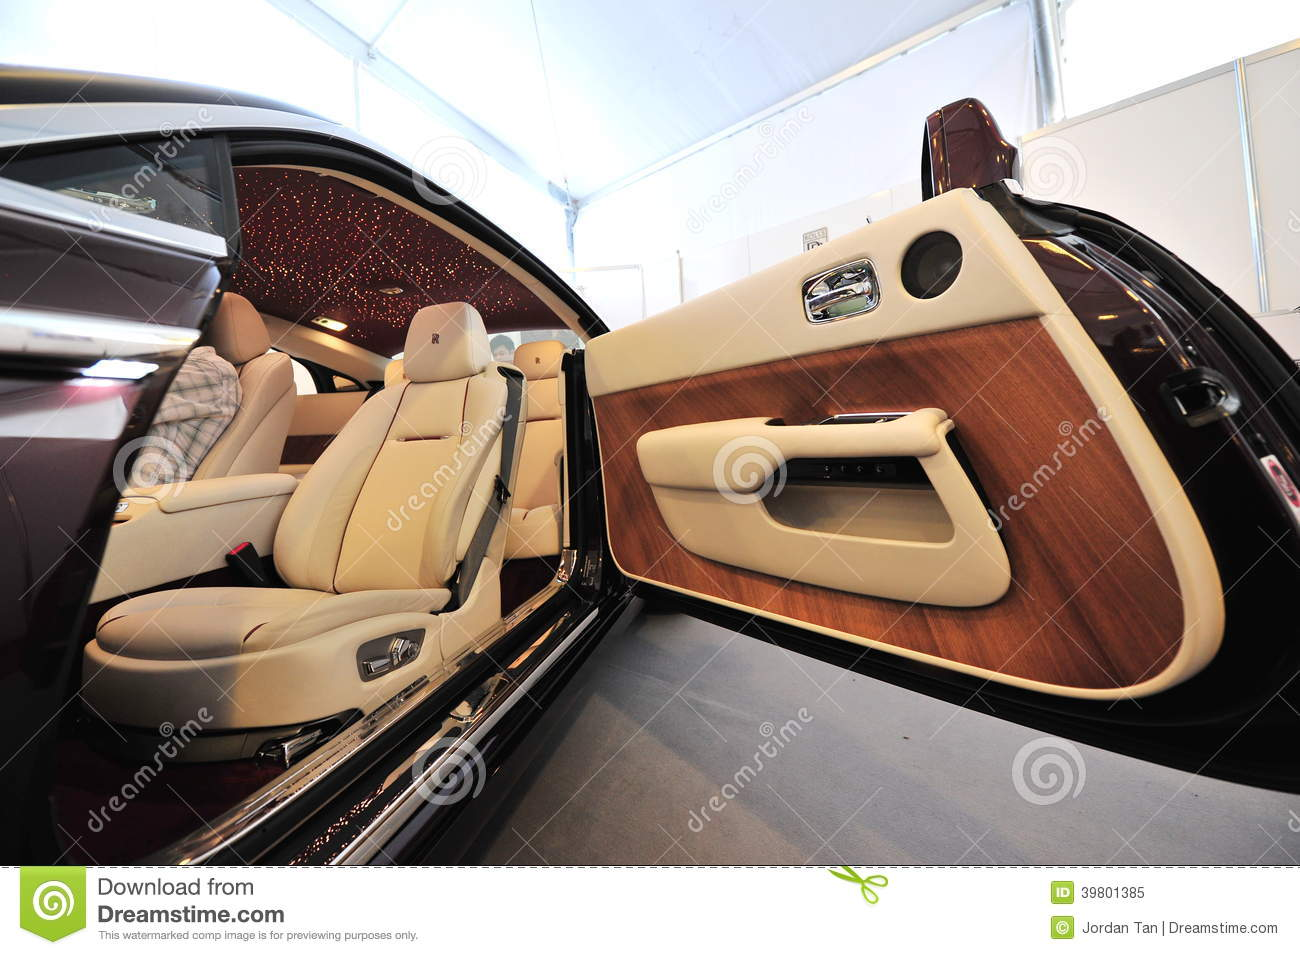 Hand Made Unique Interior Of The Rolls Royce Wraith On Display During Singapore Yacht Show At One Degree 15 Marina Club Editorial Image Image Of Leather Display 39801385